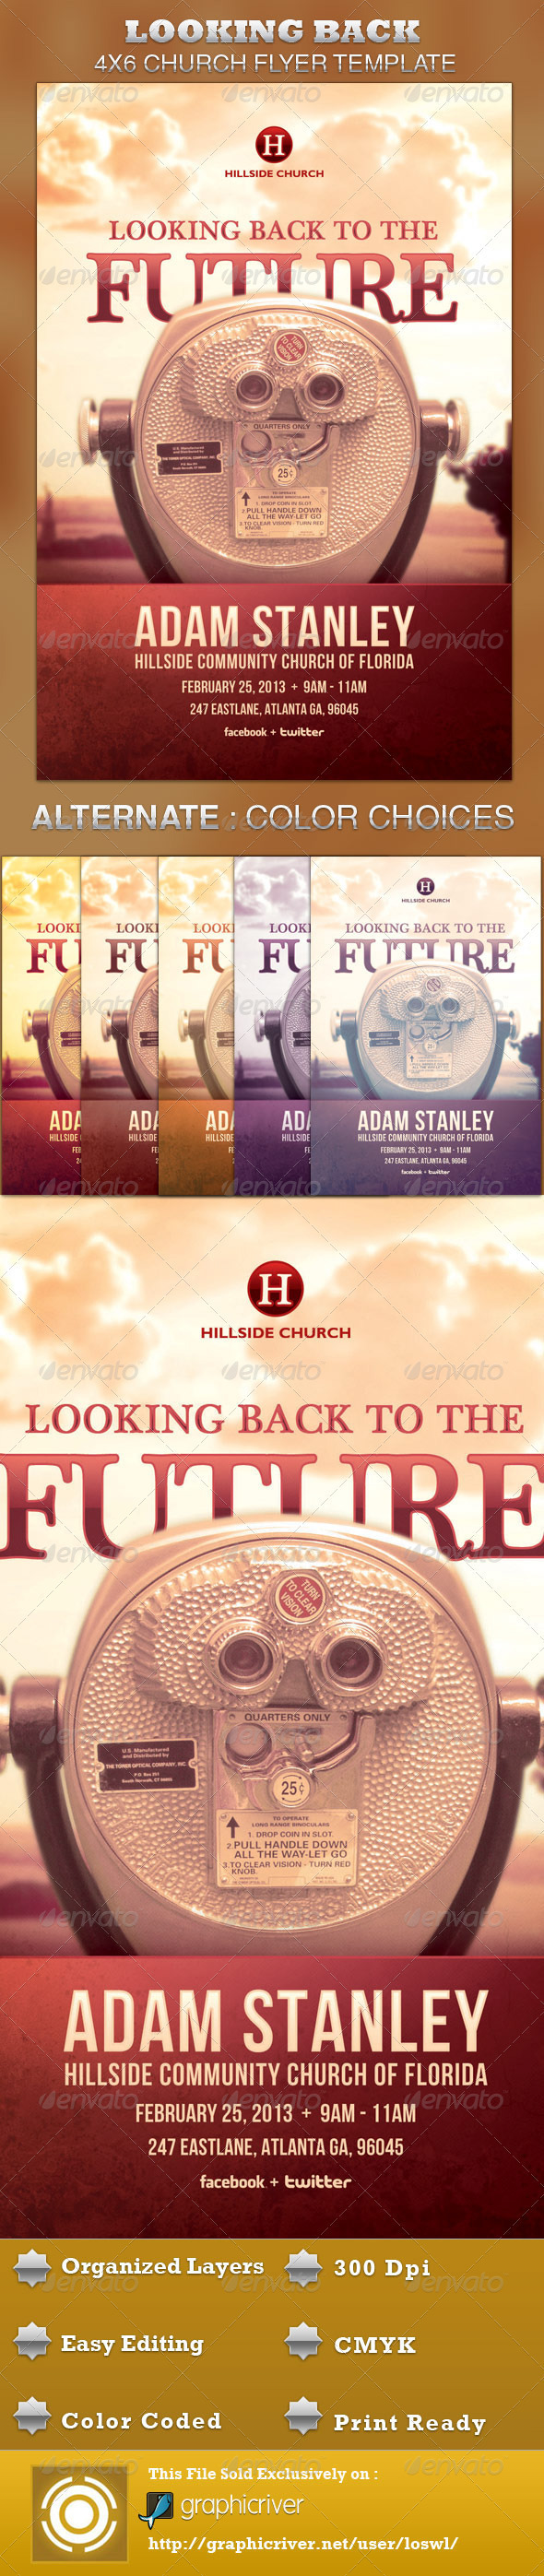 looking back to the future flyer template on behance the looking back to the future flyer template is great for any church event use it for gospel concerts pageants musical events and sermons etc